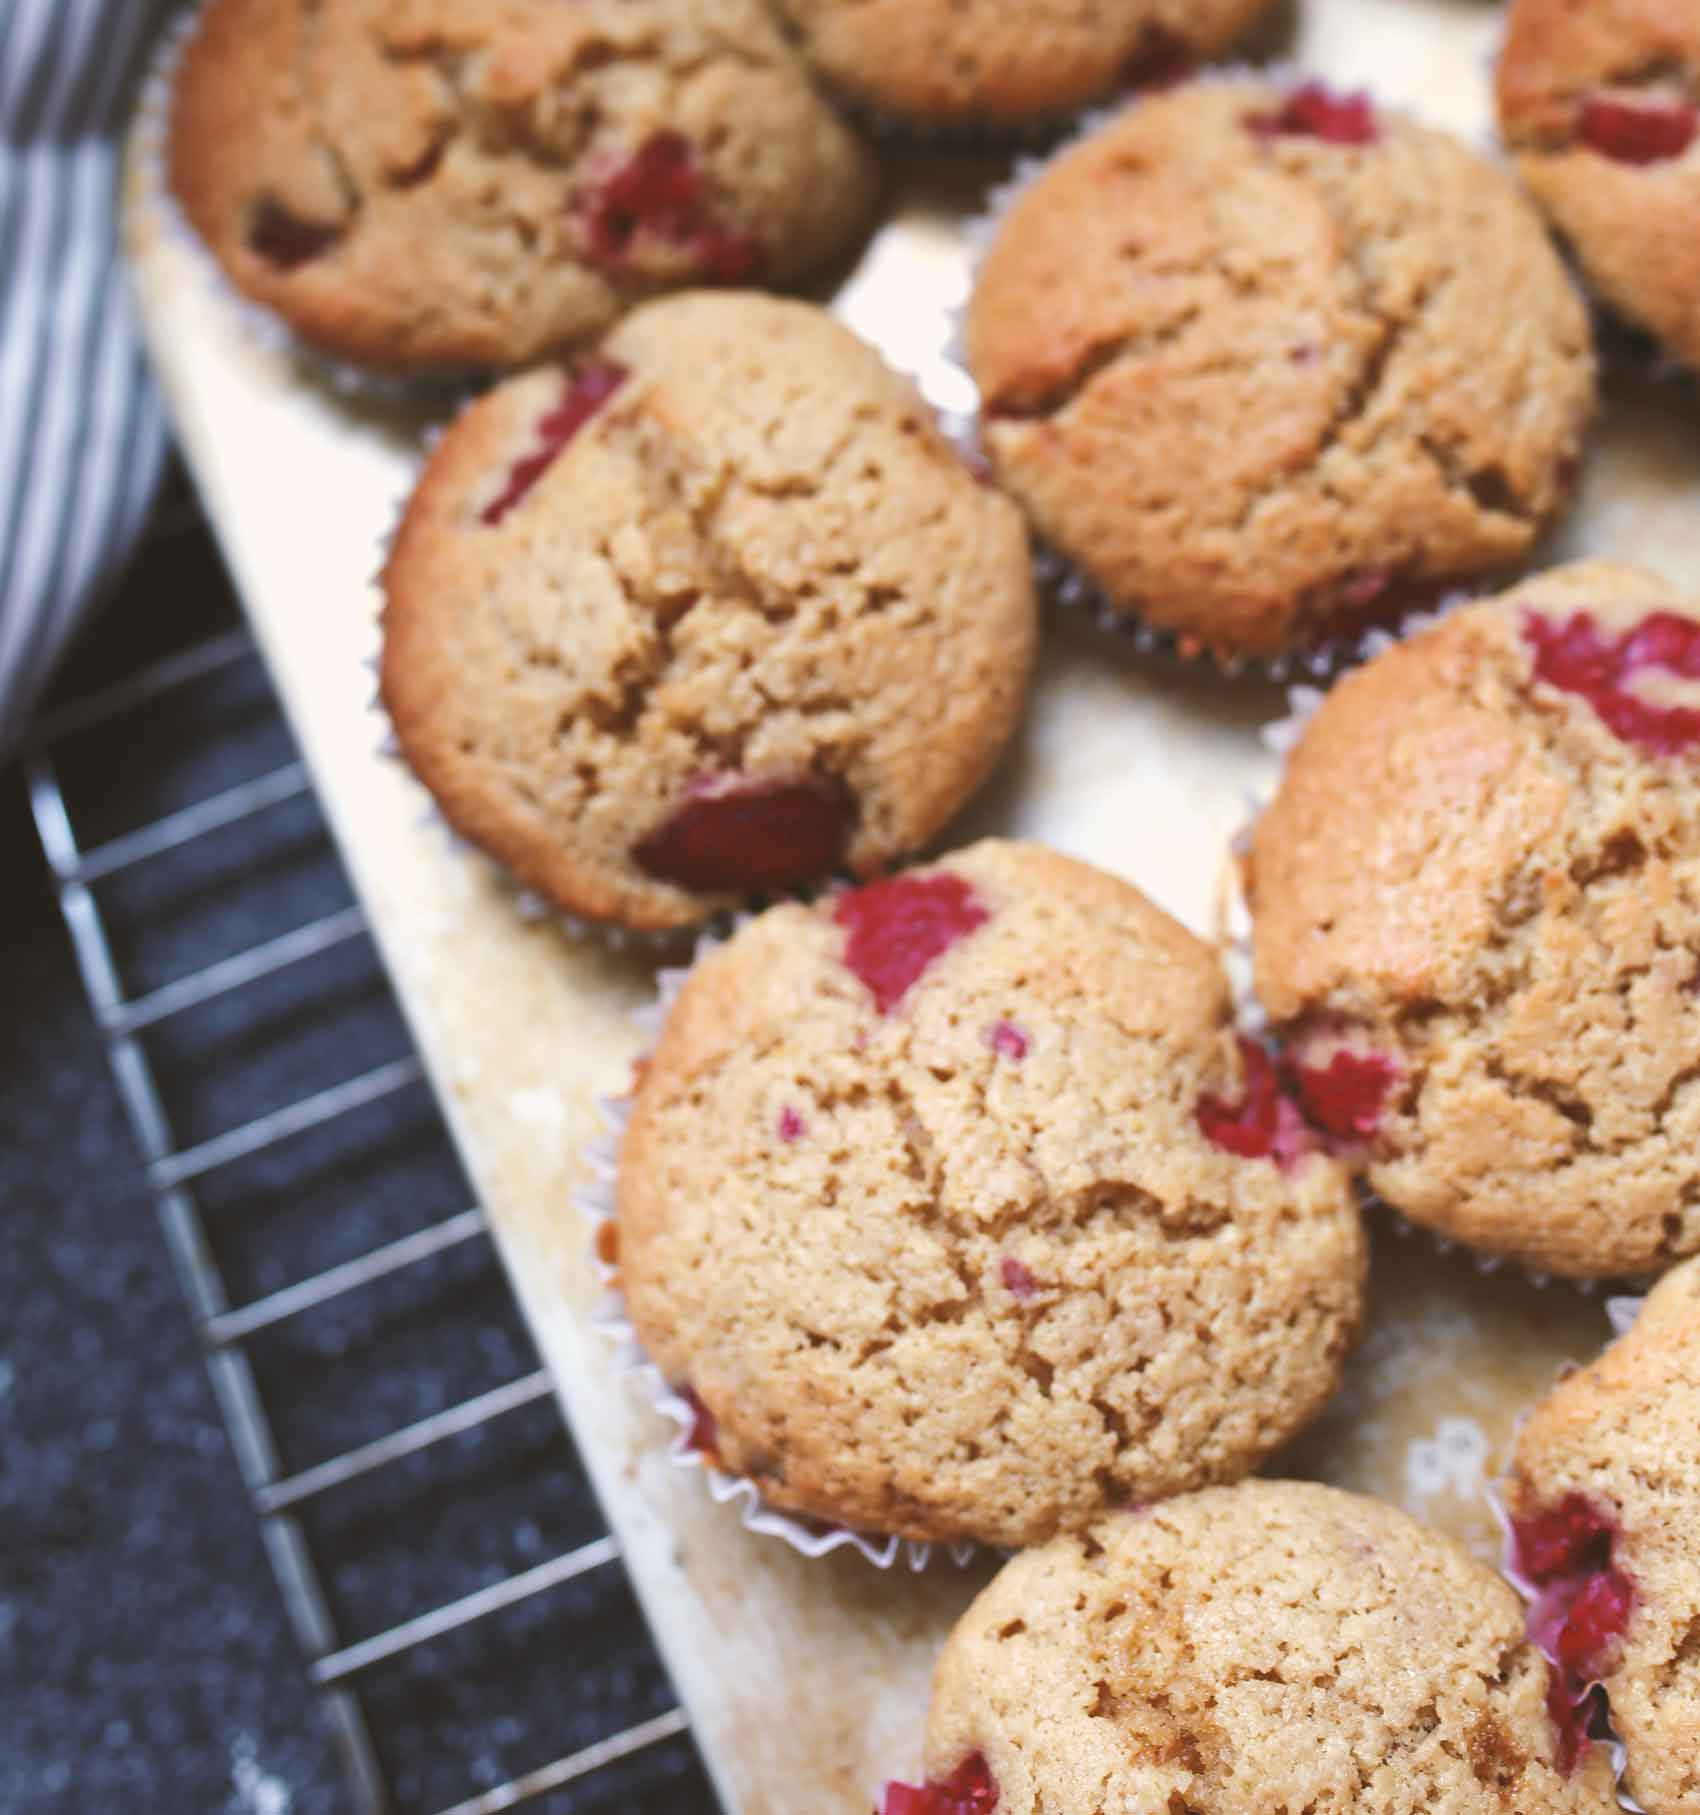 A rose tea pairing with Anna Jones' coconut and raspberry cakes